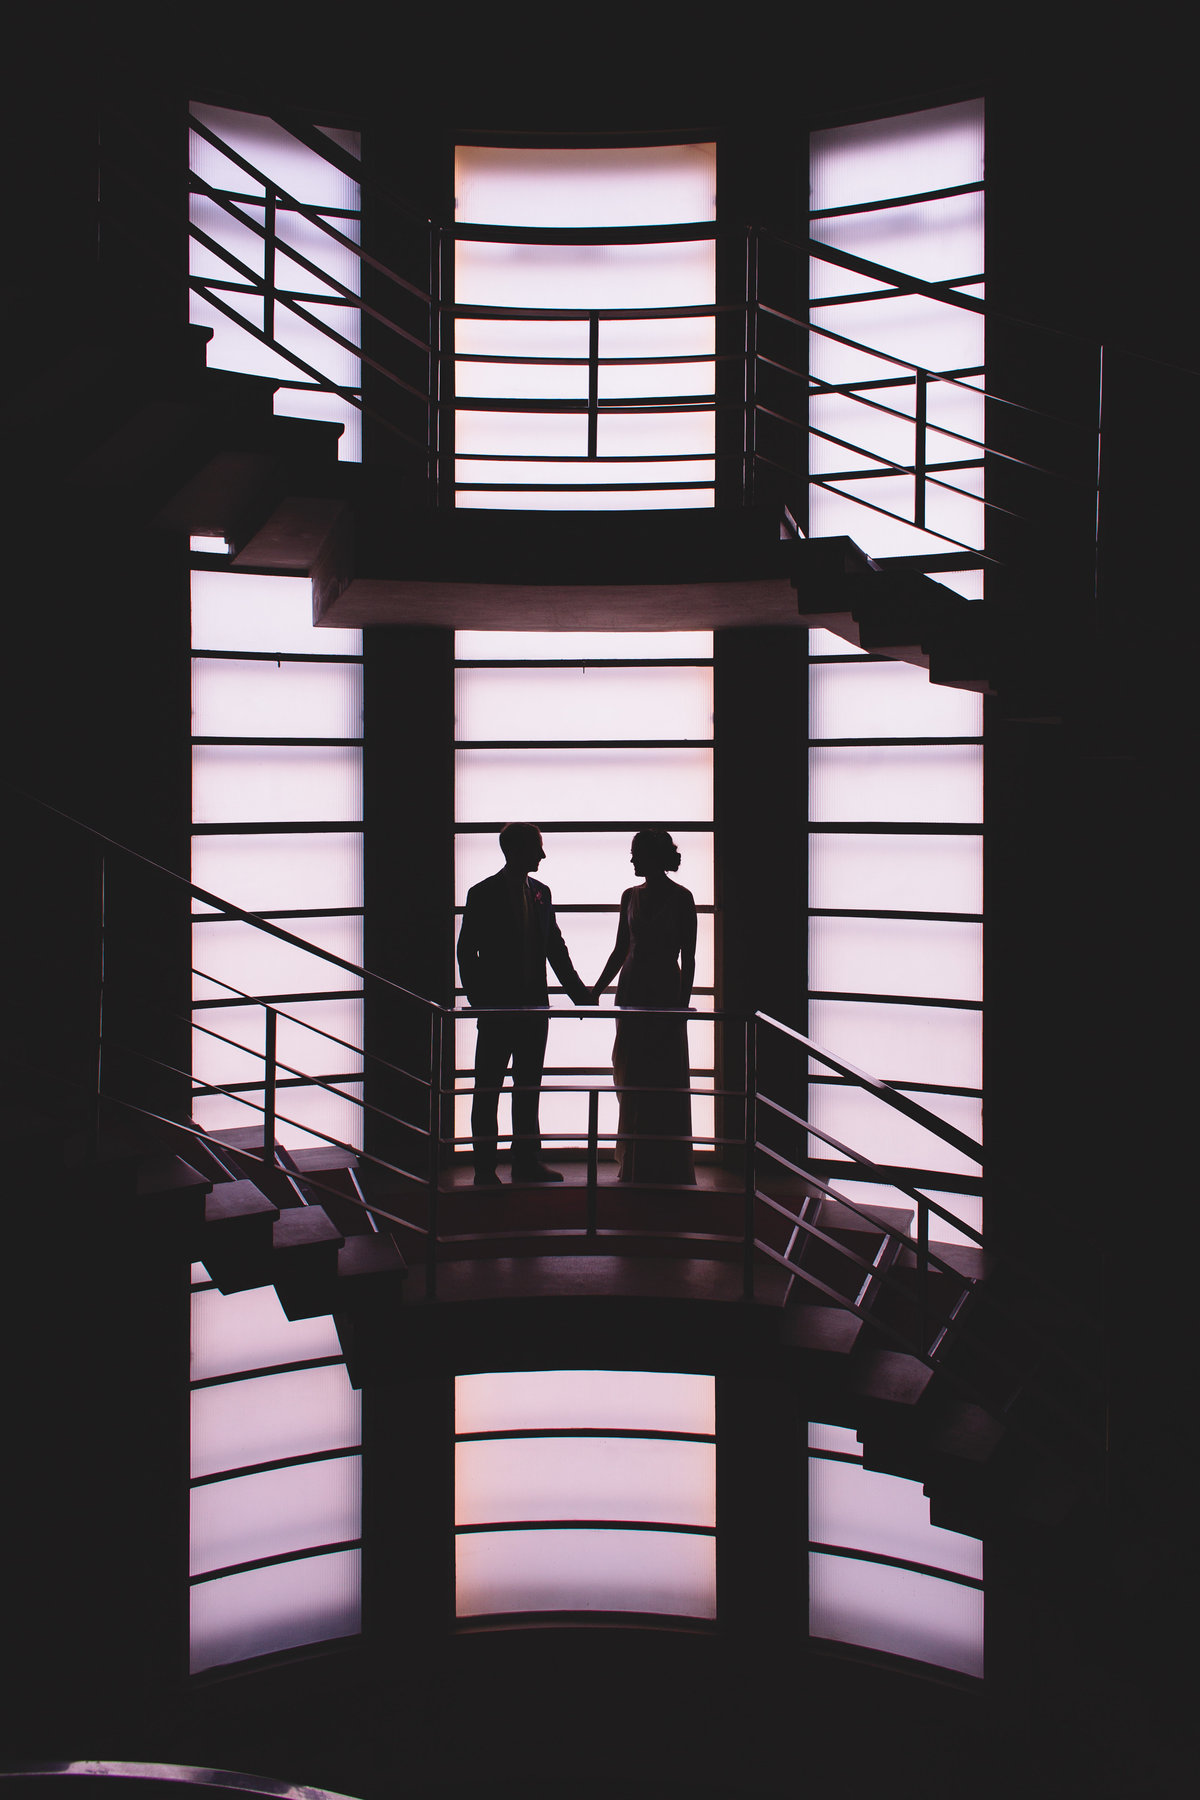 silhouette of bride and groom in front of stained glass window